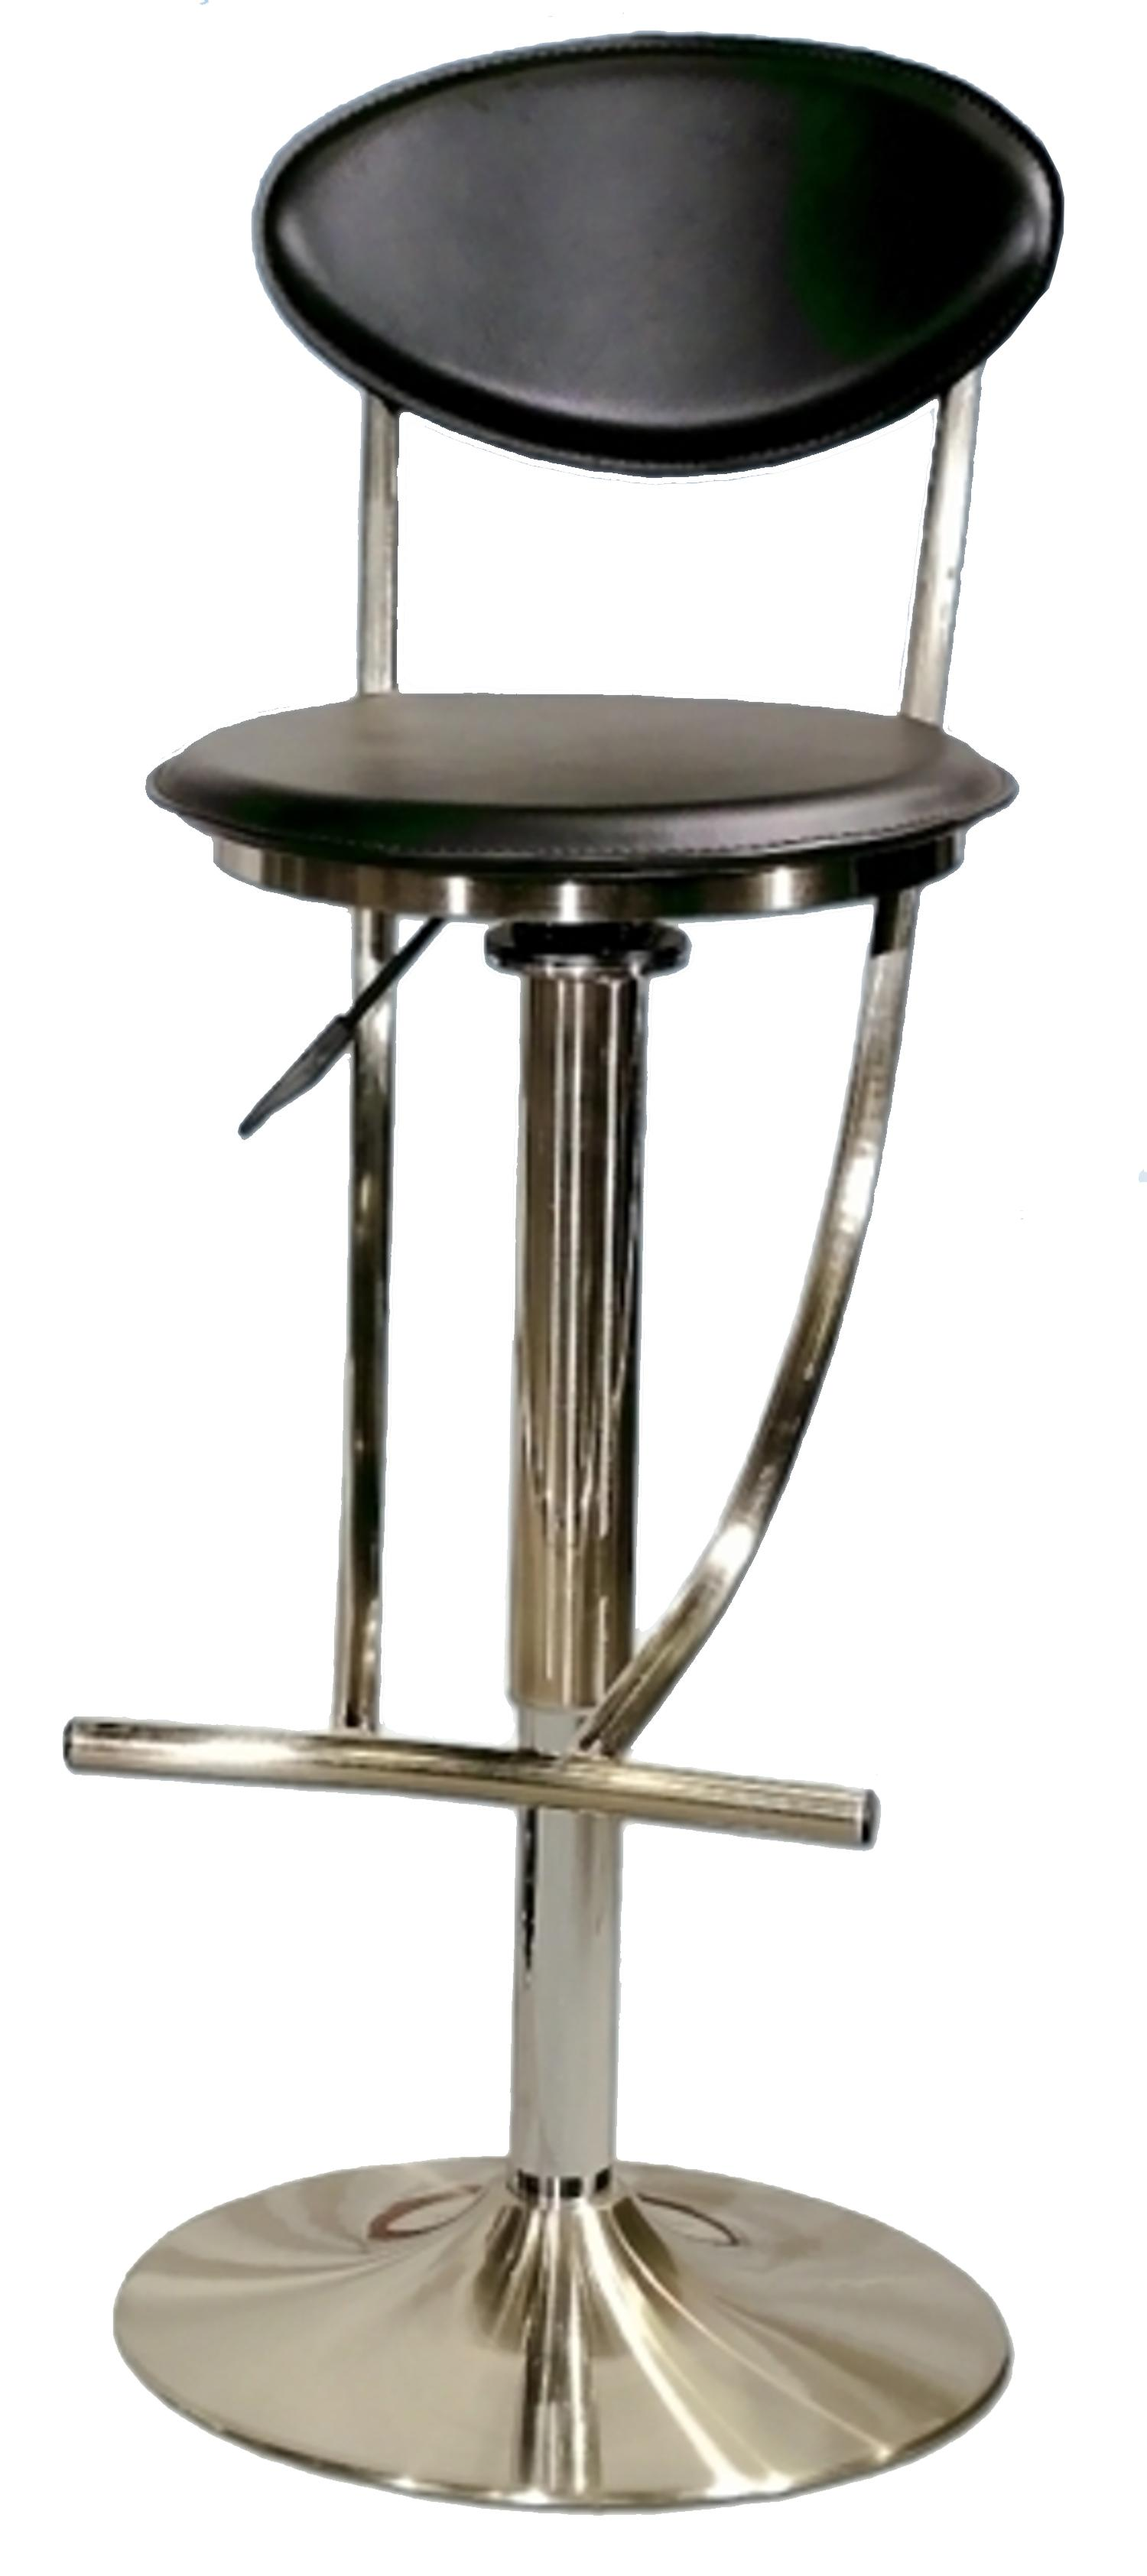 6000 Series Adjustable Height Swivel Stool by Chintaly Imports at Corner Furniture